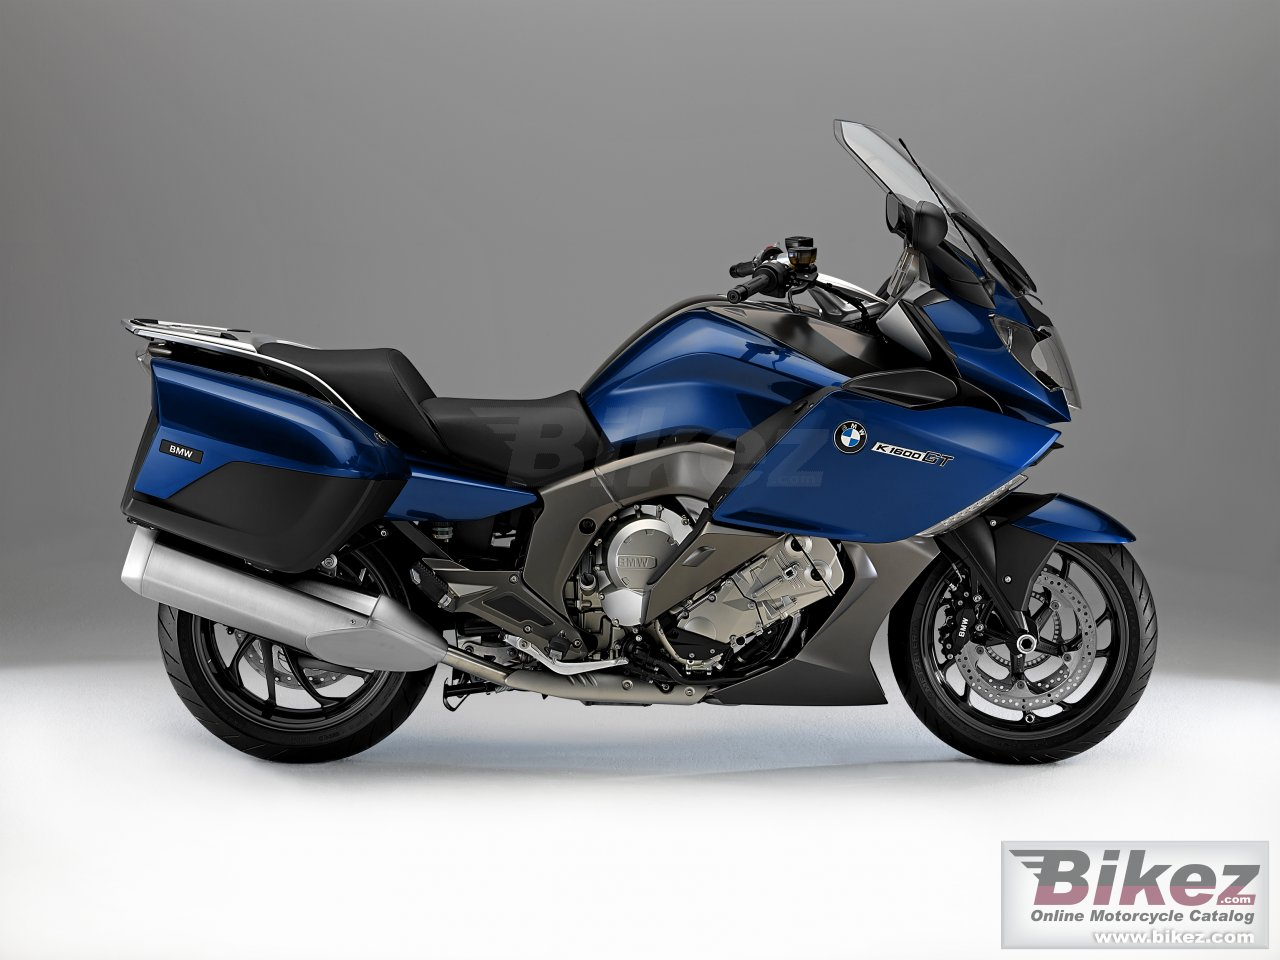 Big BMW k 1600 gt picture and wallpaper from Bikez.com